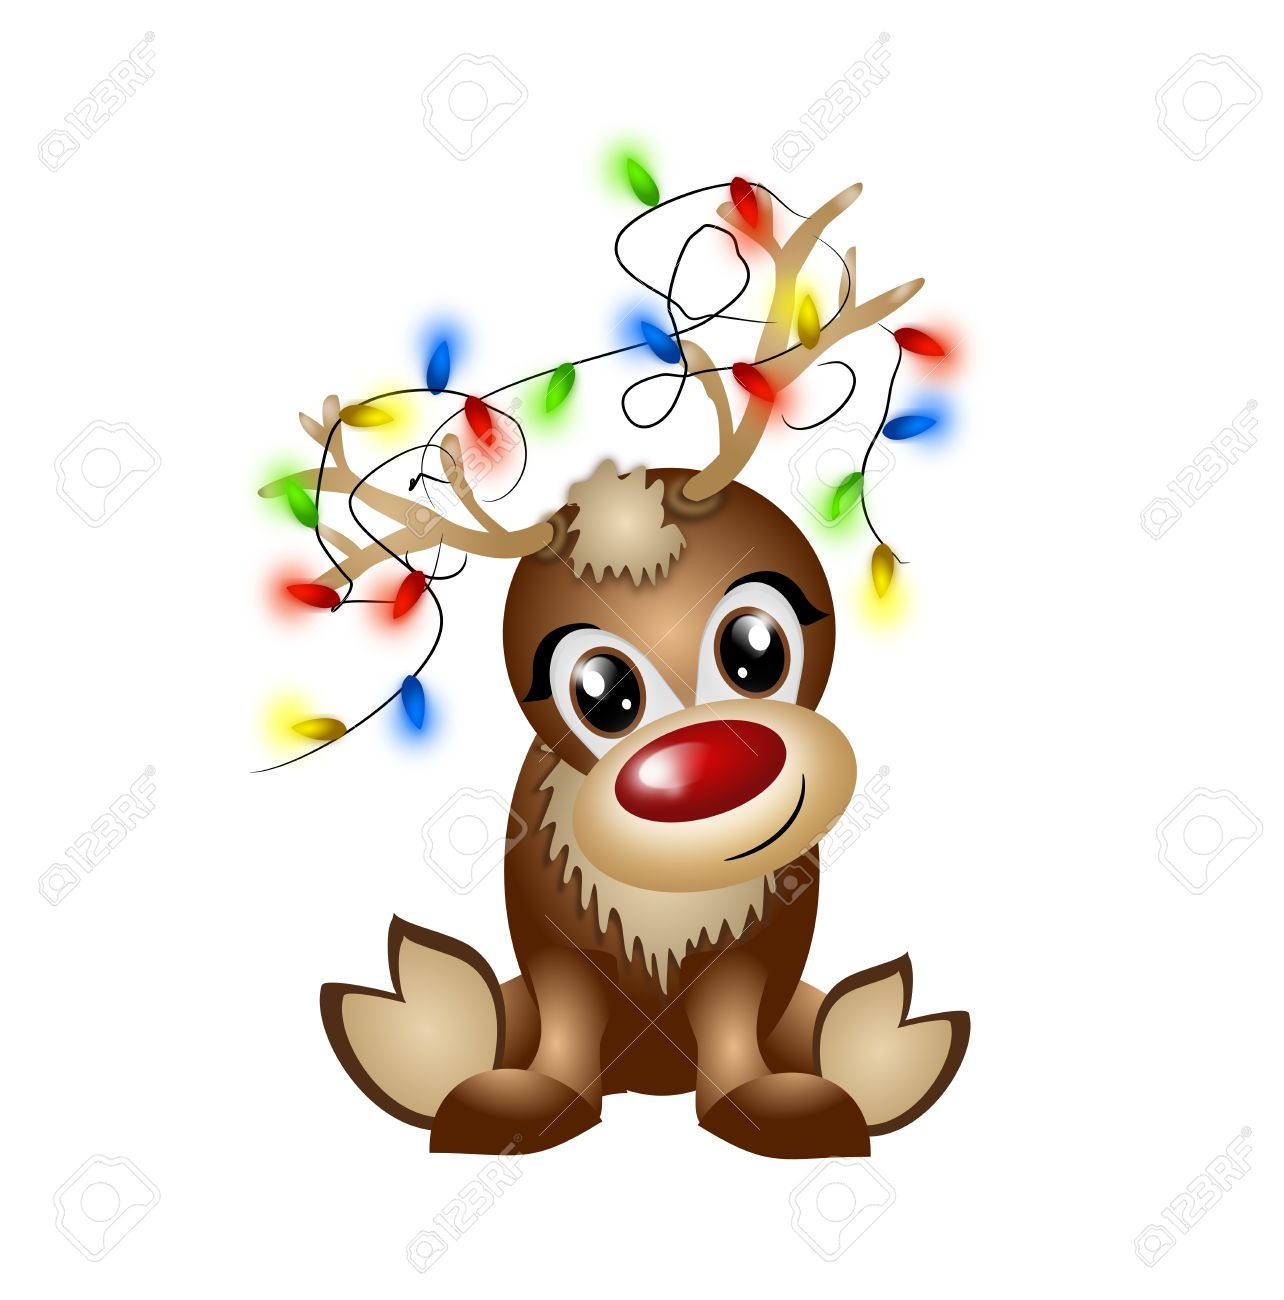 Uncategorized Cute Reindeer cute reindeer with light chain entangled in the antlers stock photo 33032999